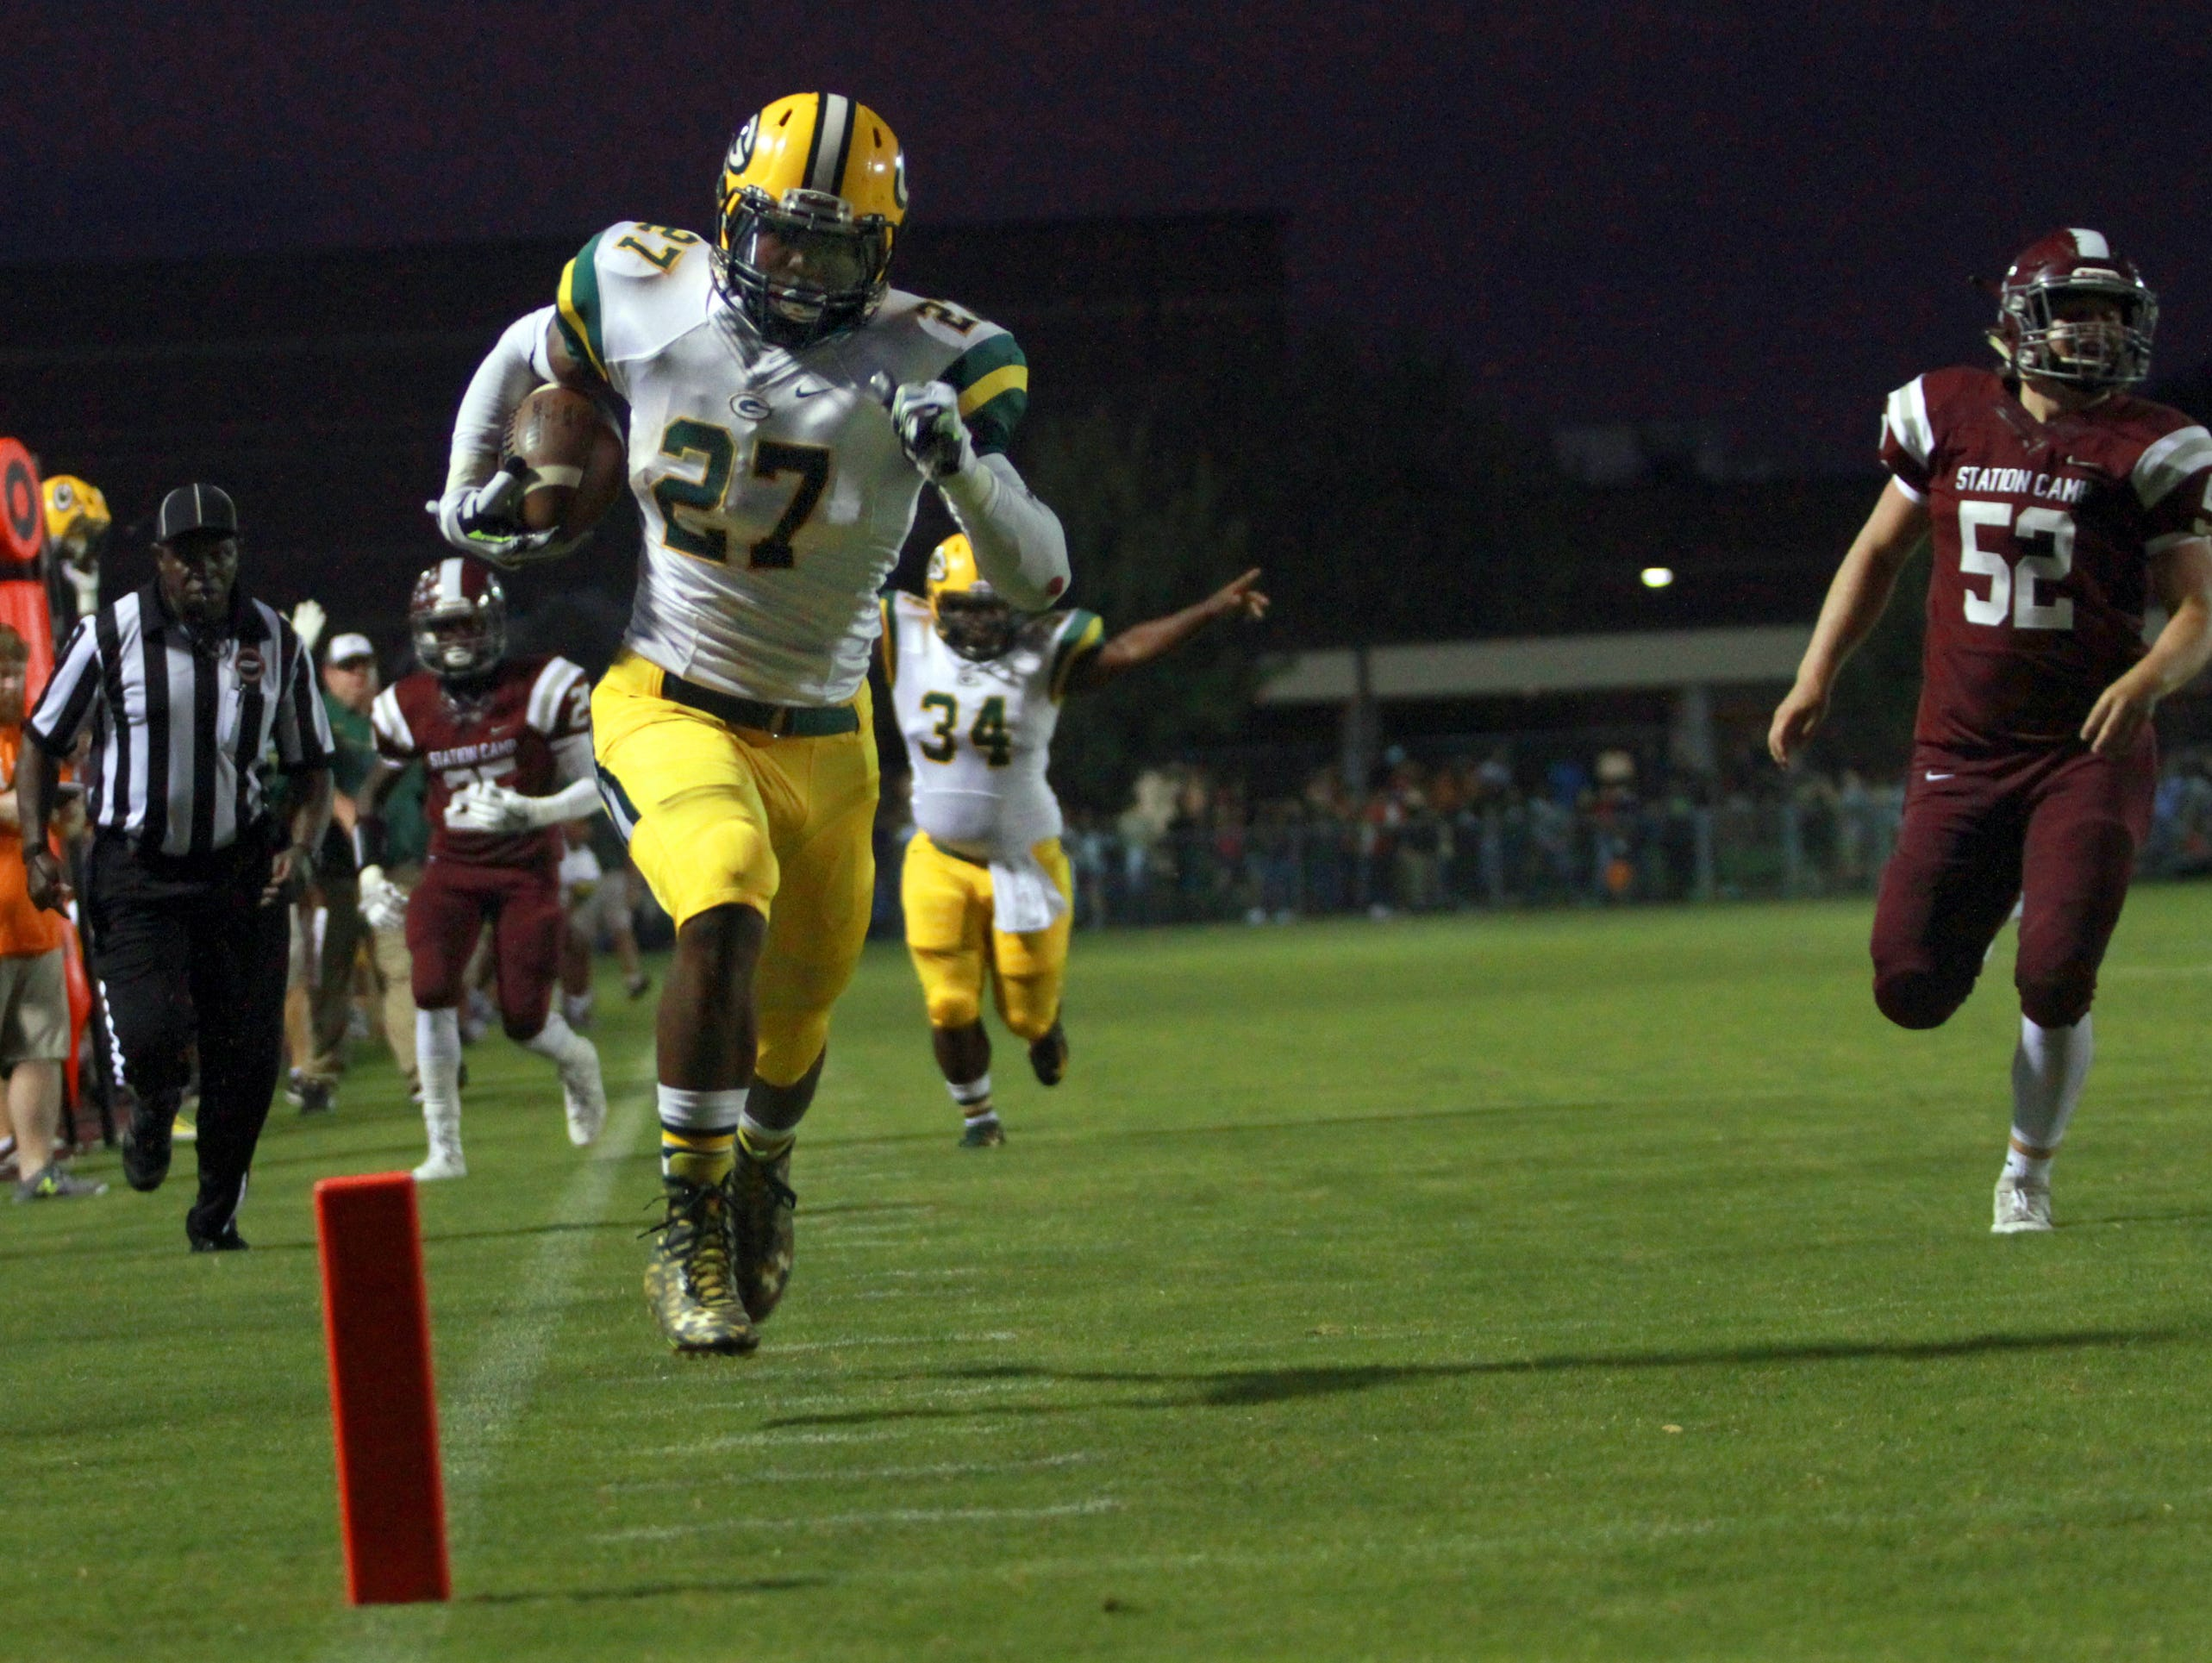 Gallatin running back Jordan Mason rumbles into the endzone, leaving Station Camp's Simon Freeman behind. Mason scored three touchdowns in the Green Wave's 34-27 victory on Sept. 23.